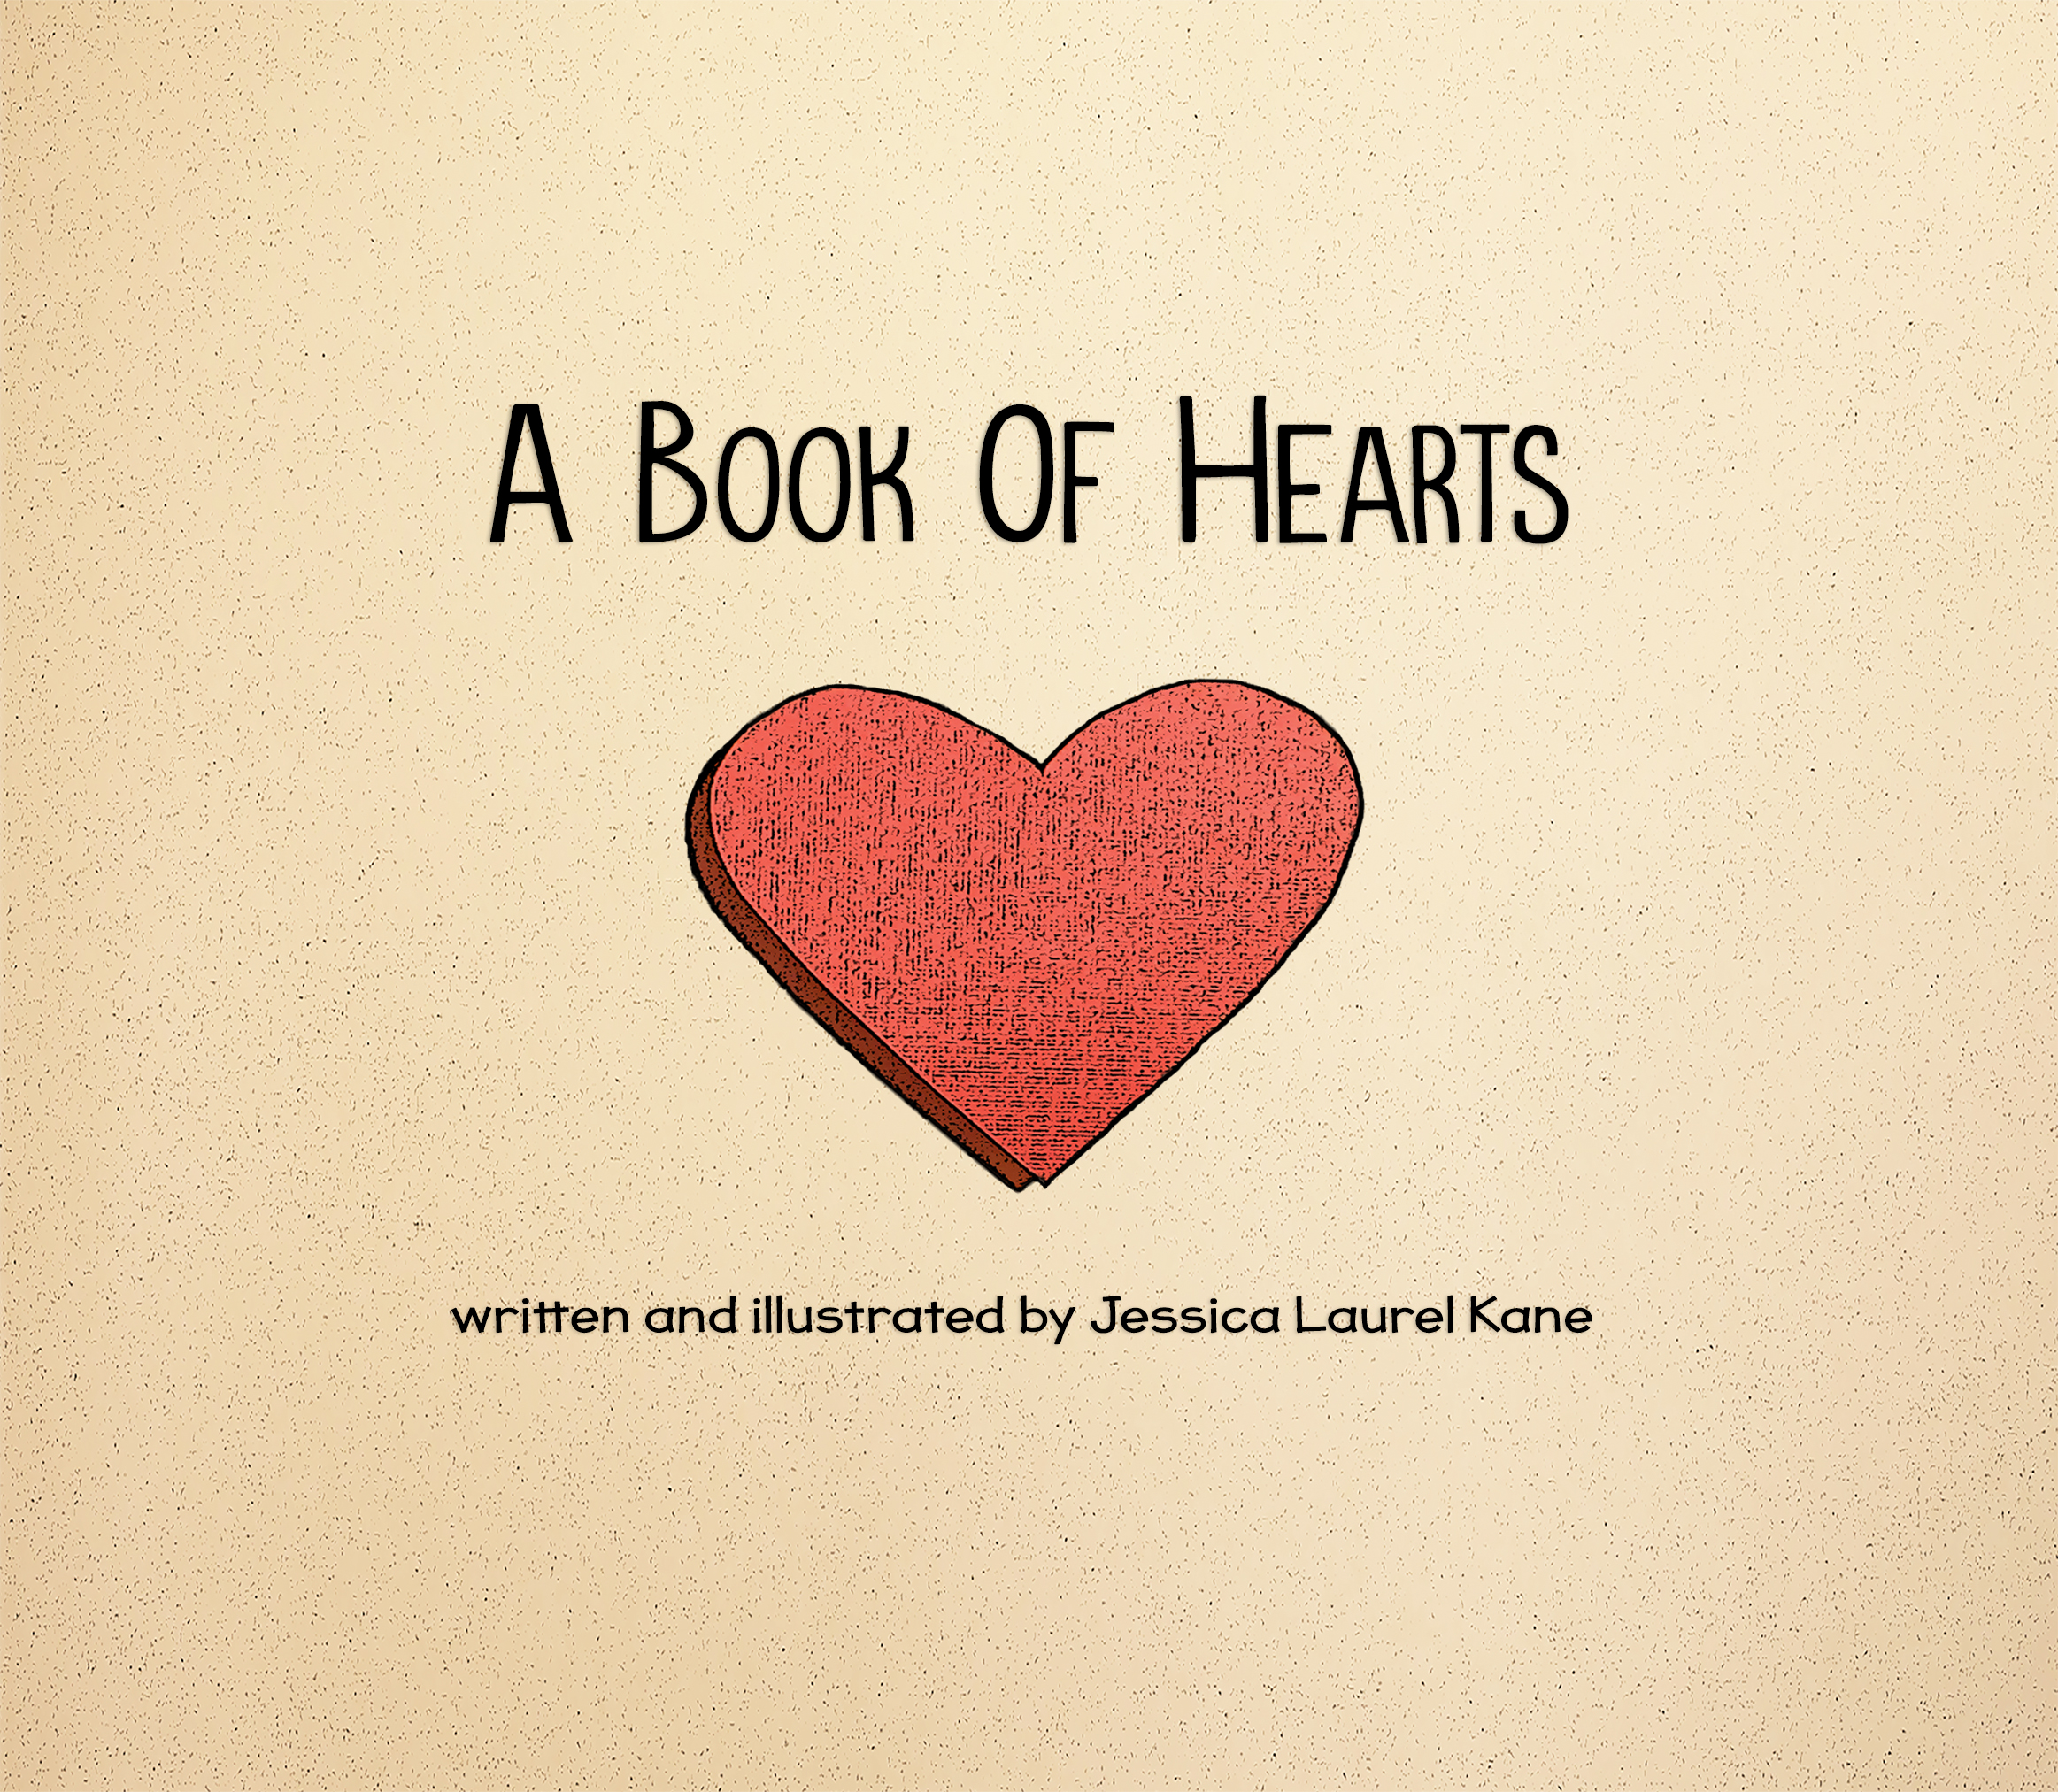 BOOK OF HEARTS COVER.jpg